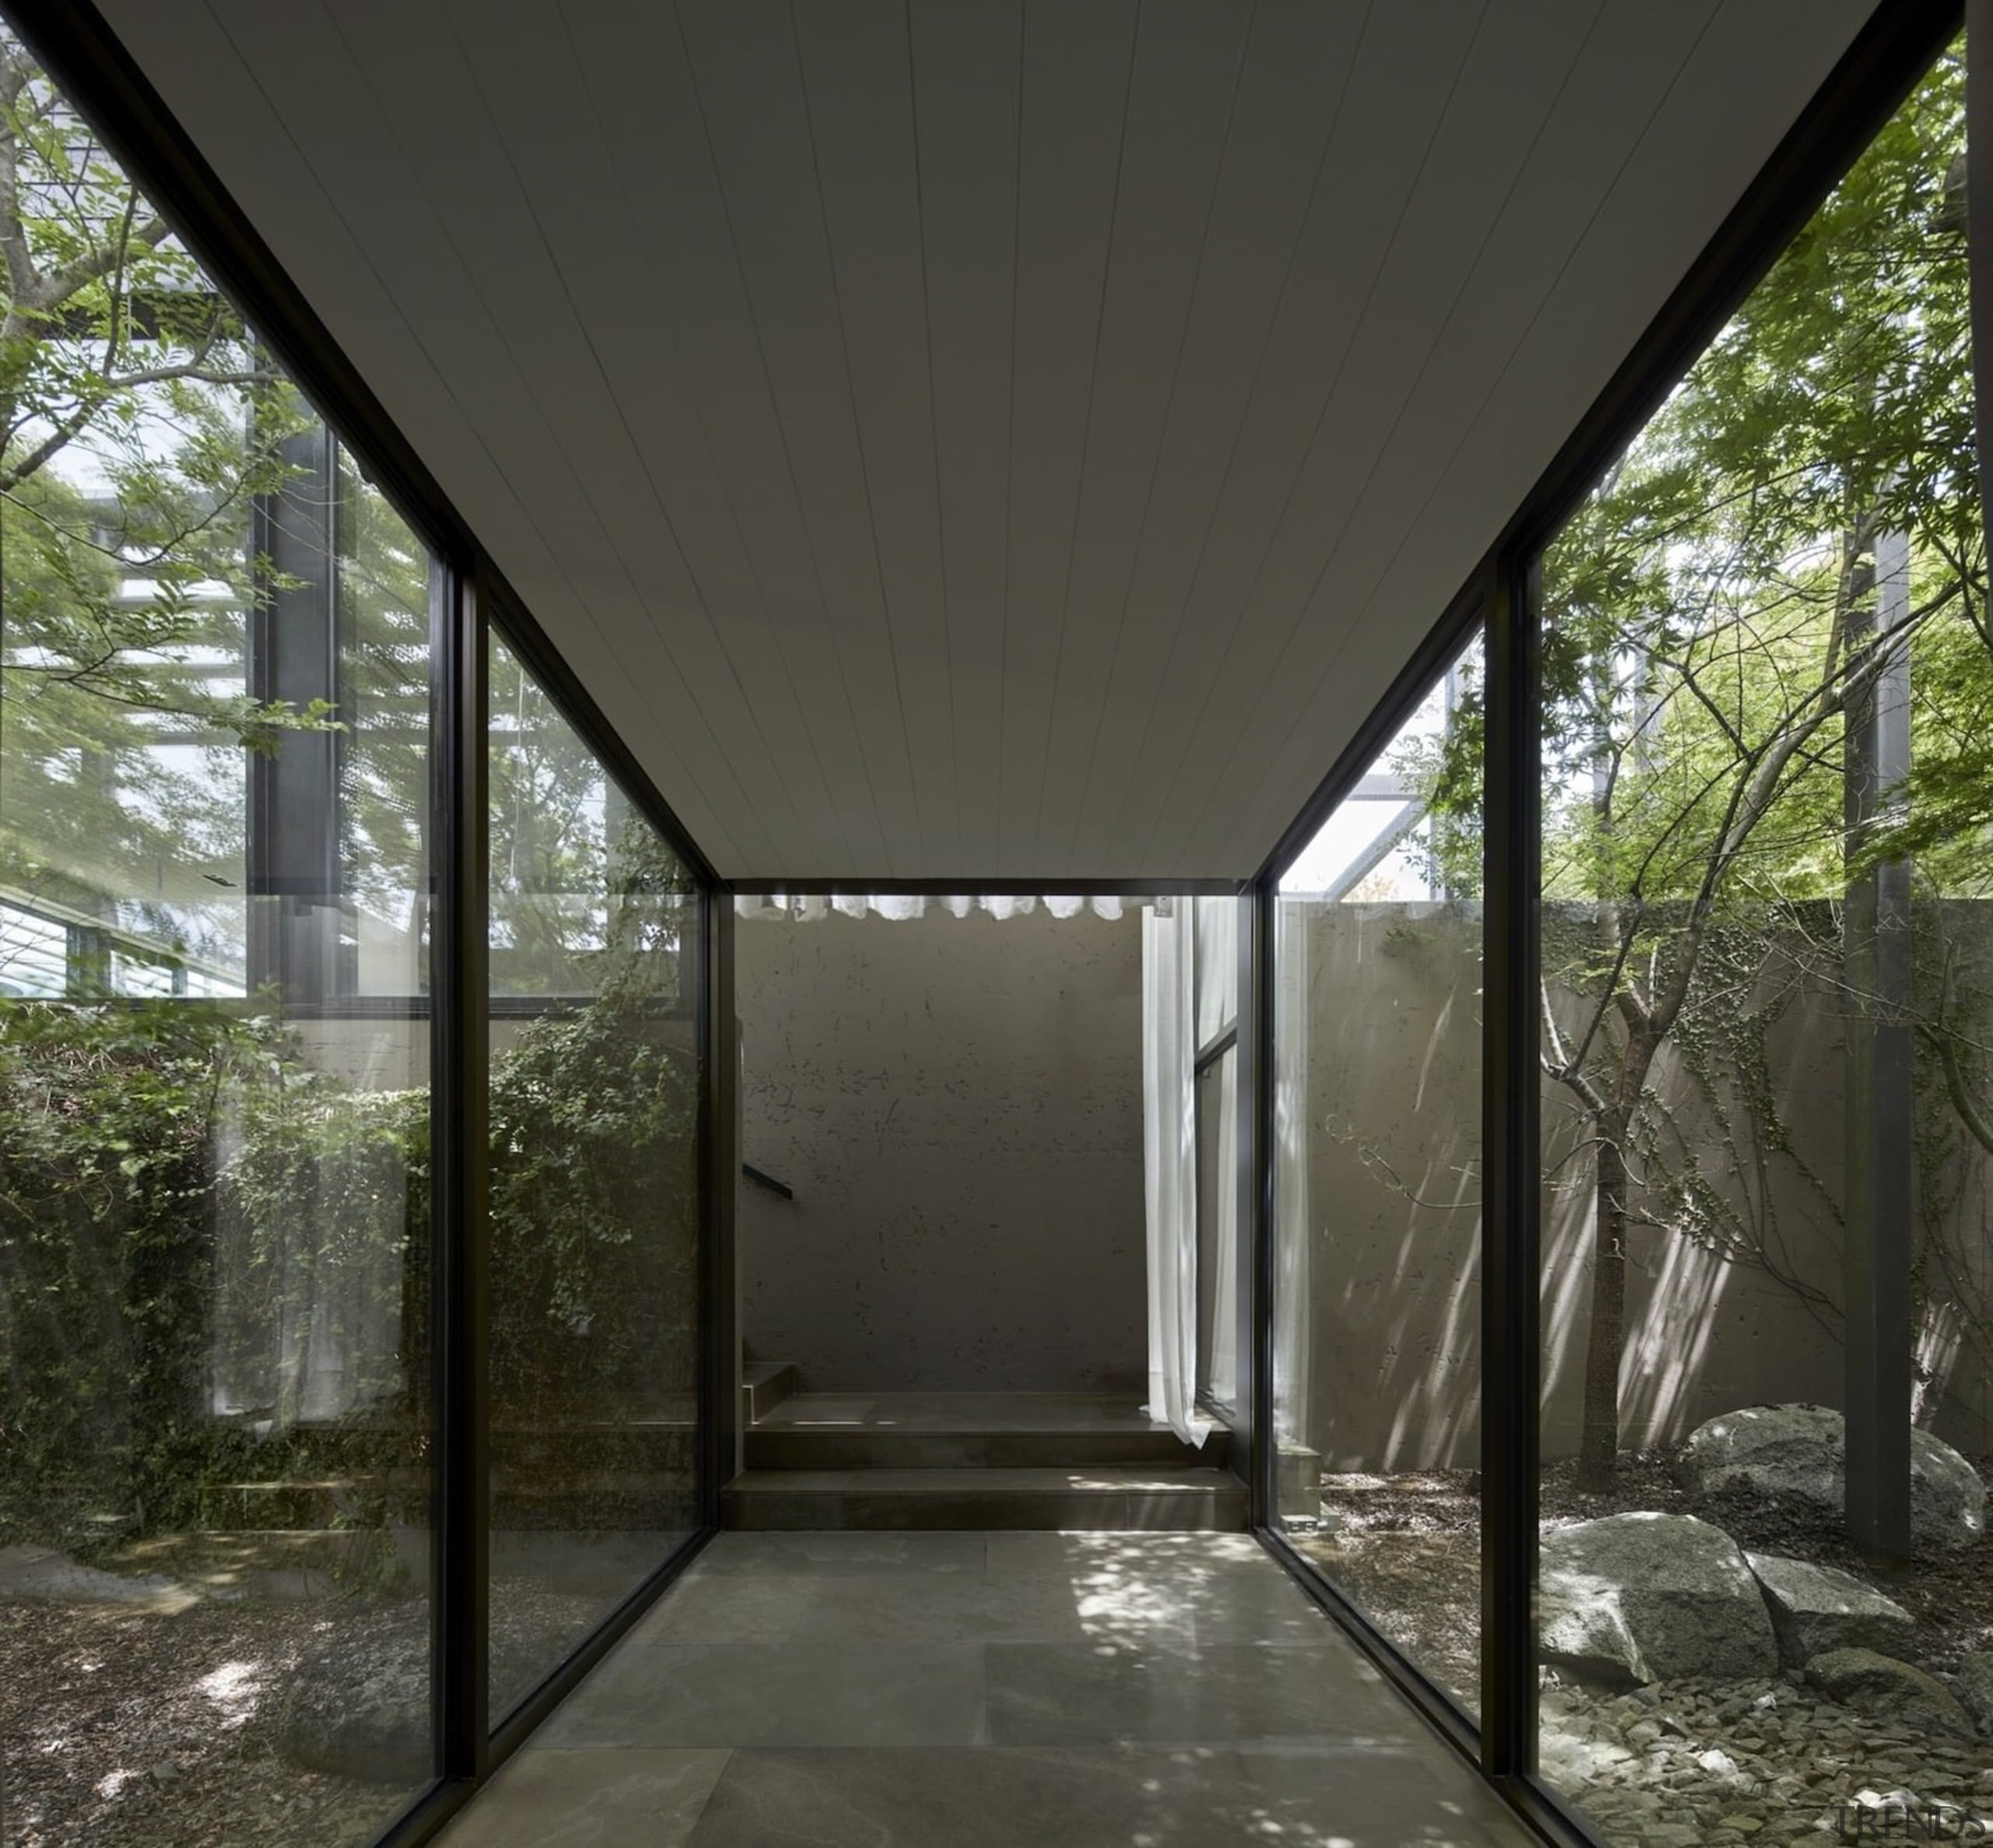 Architect: B.E Architecture architecture, daylighting, house, real estate, roof, black